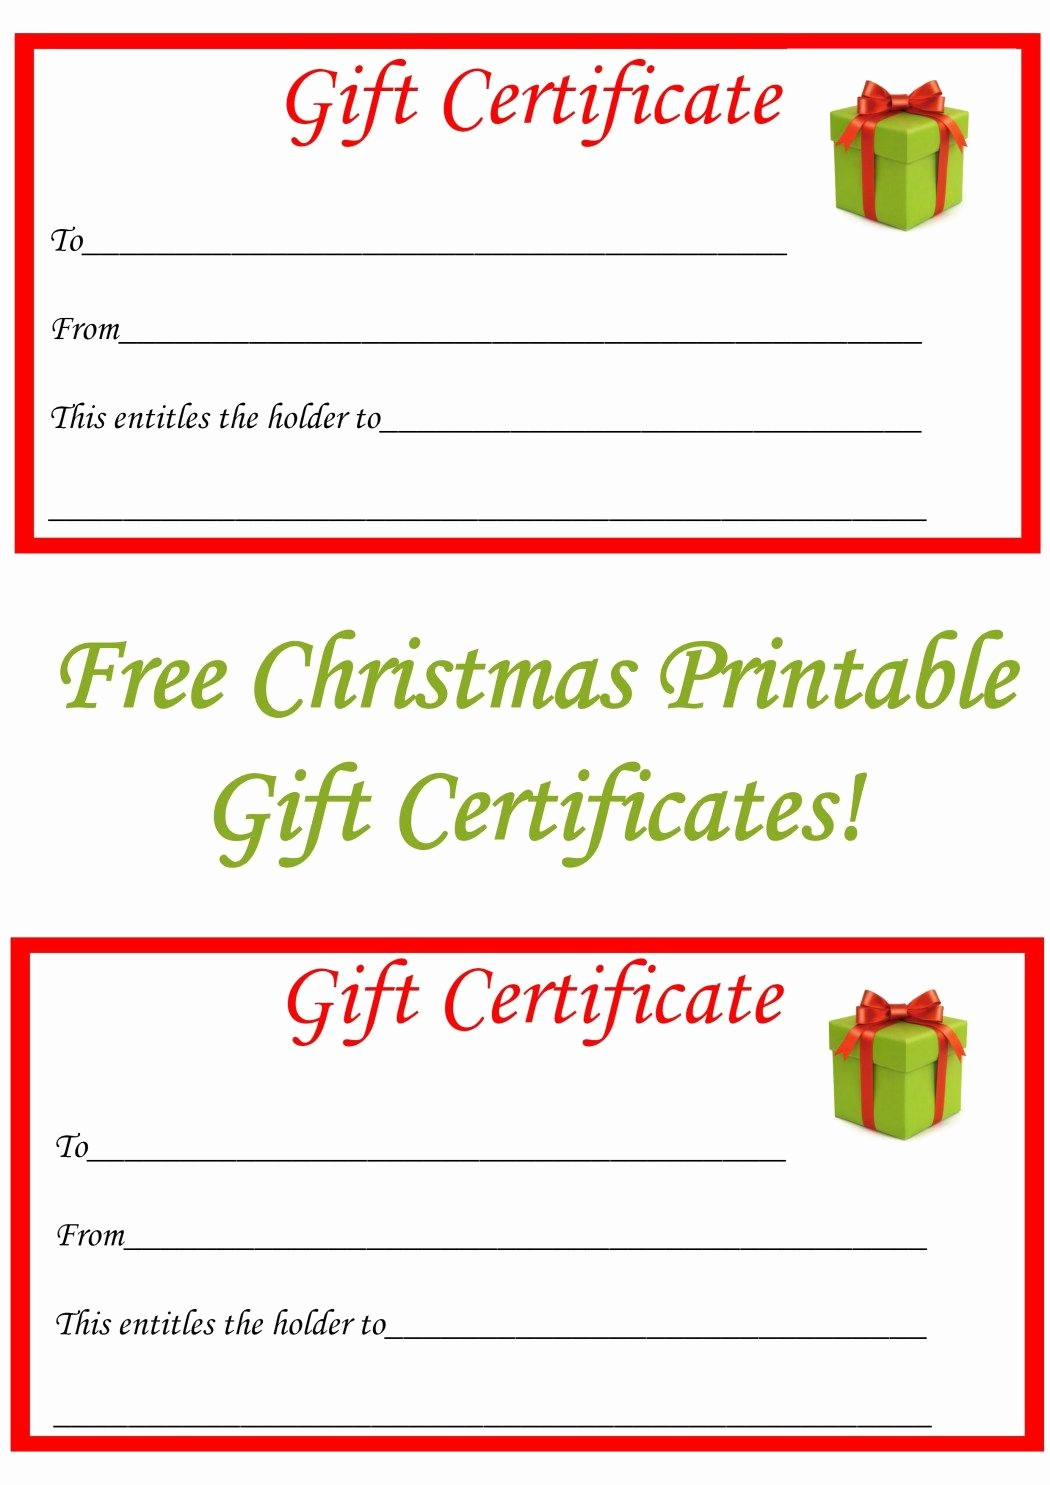 Blank Gift Certificates to Print Awesome Best 25 Printable T Certificates Ideas On Pinterest